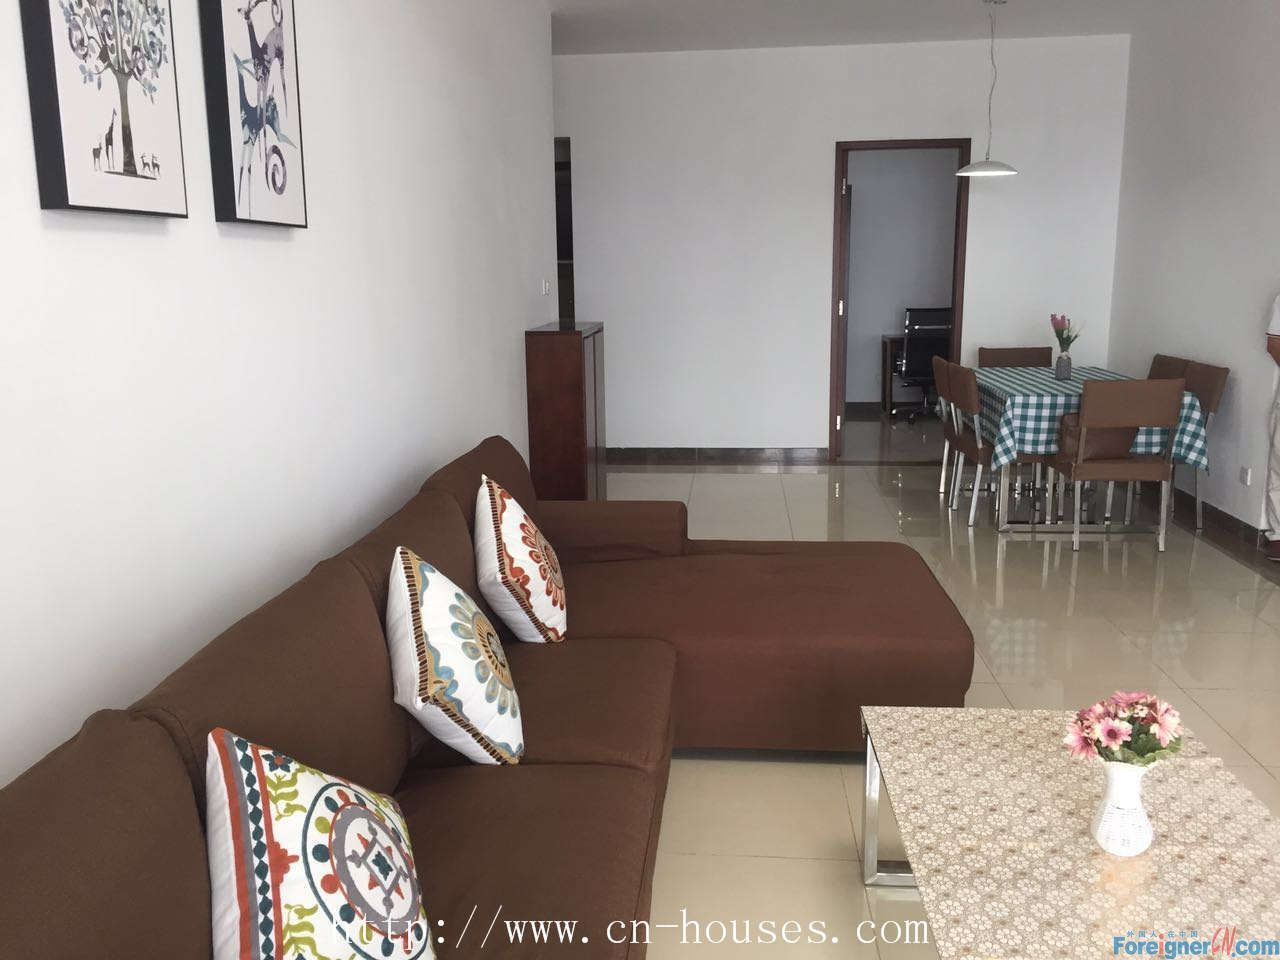 The most economical and practical three bedrooms in Zhujiang New Town, Hotel - style management, clean and simple.